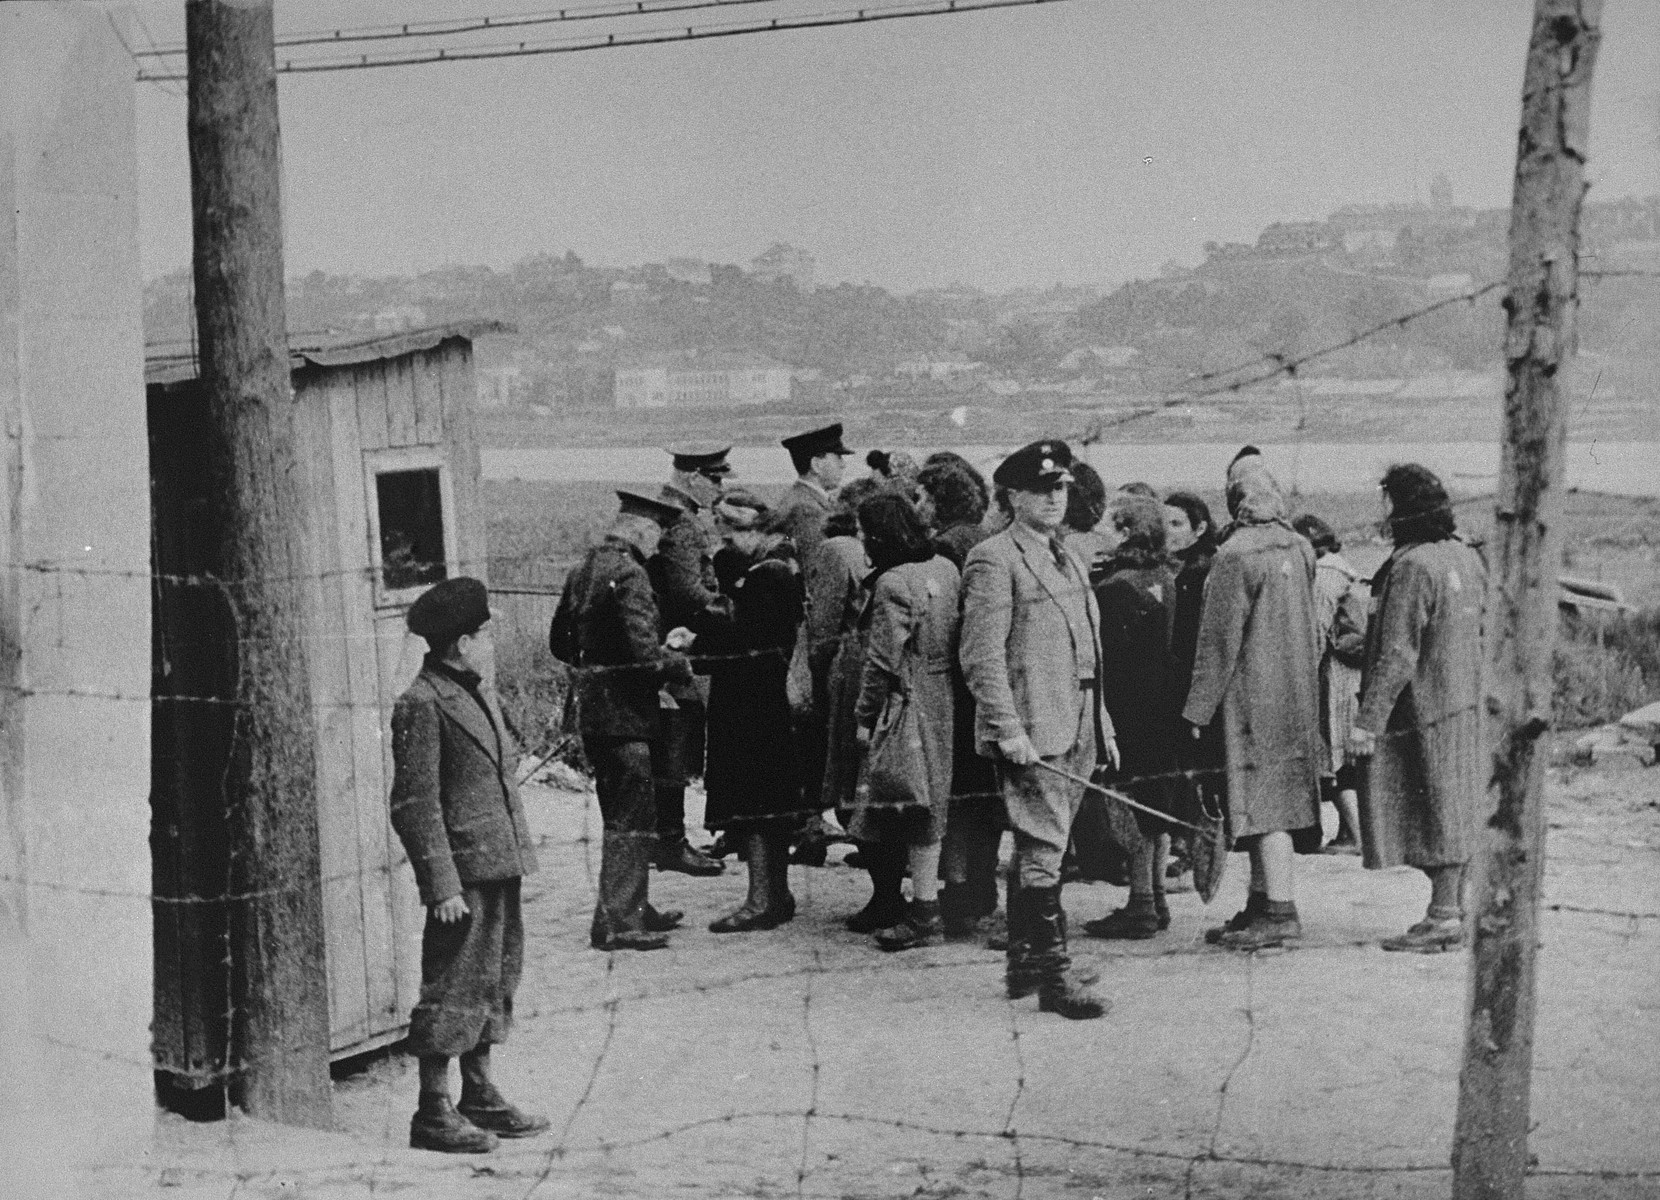 A group of Jewish women return to the ghetto after a day of forced labor on the outside. They line-up to be searched by German and Lithuanian guards.  Tanchum Aronstamm of the Jewish Police, with a baton in hand, supervises the group in the foreground.